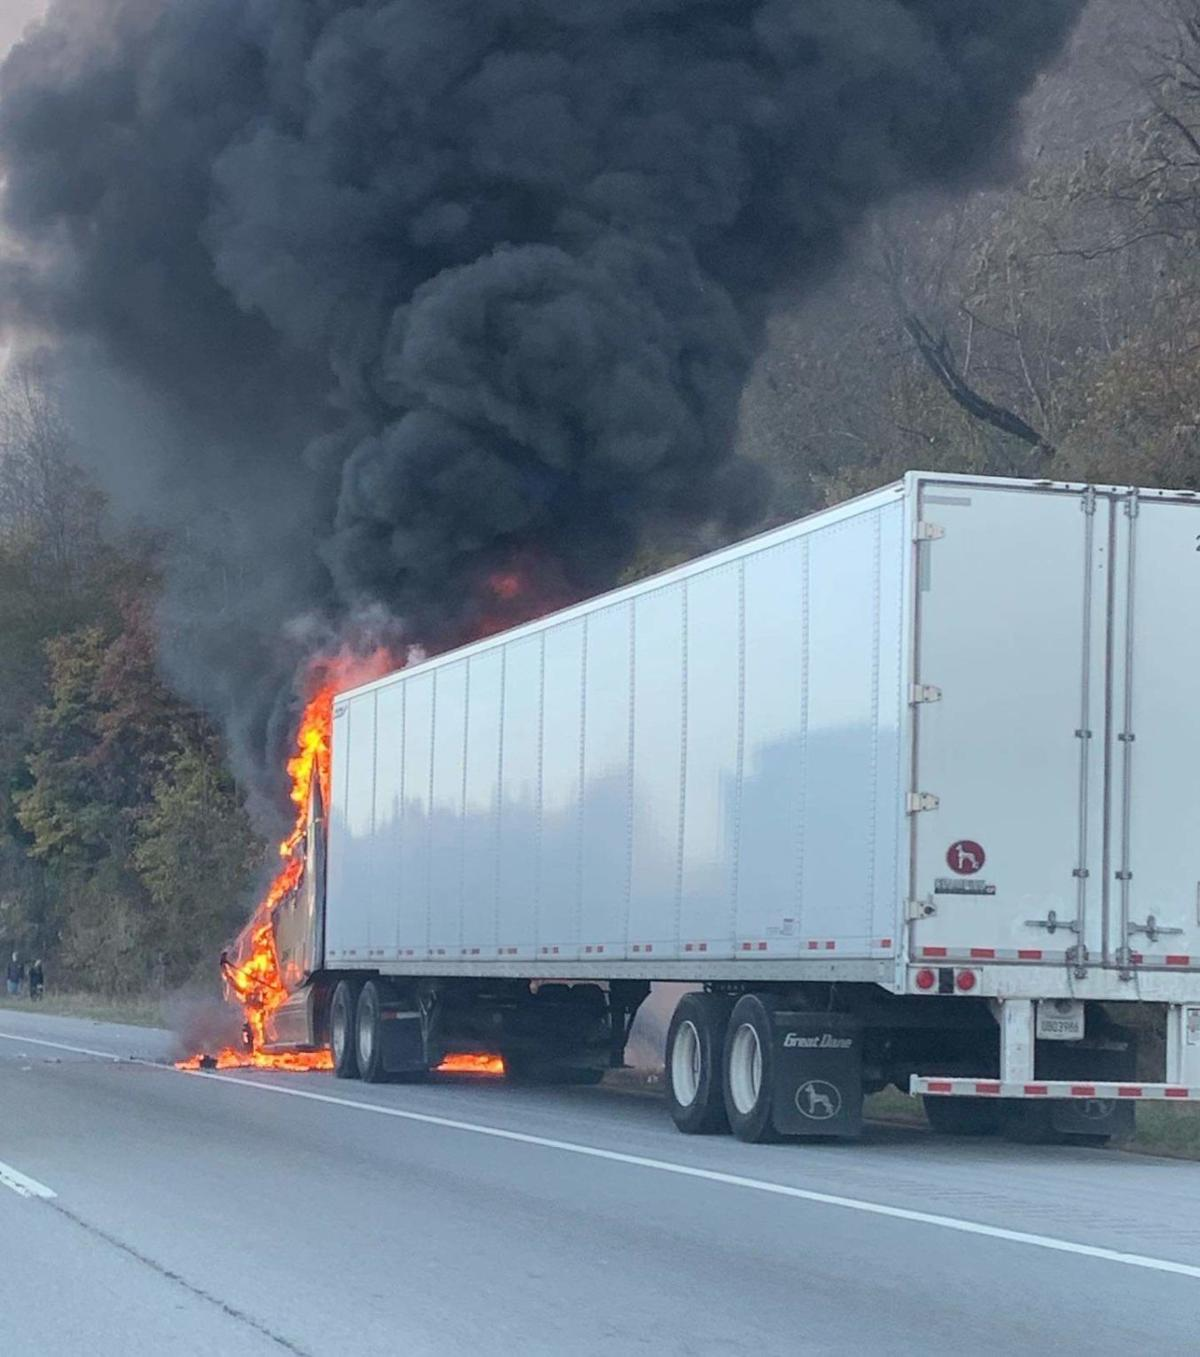 Tractor trailer on fire